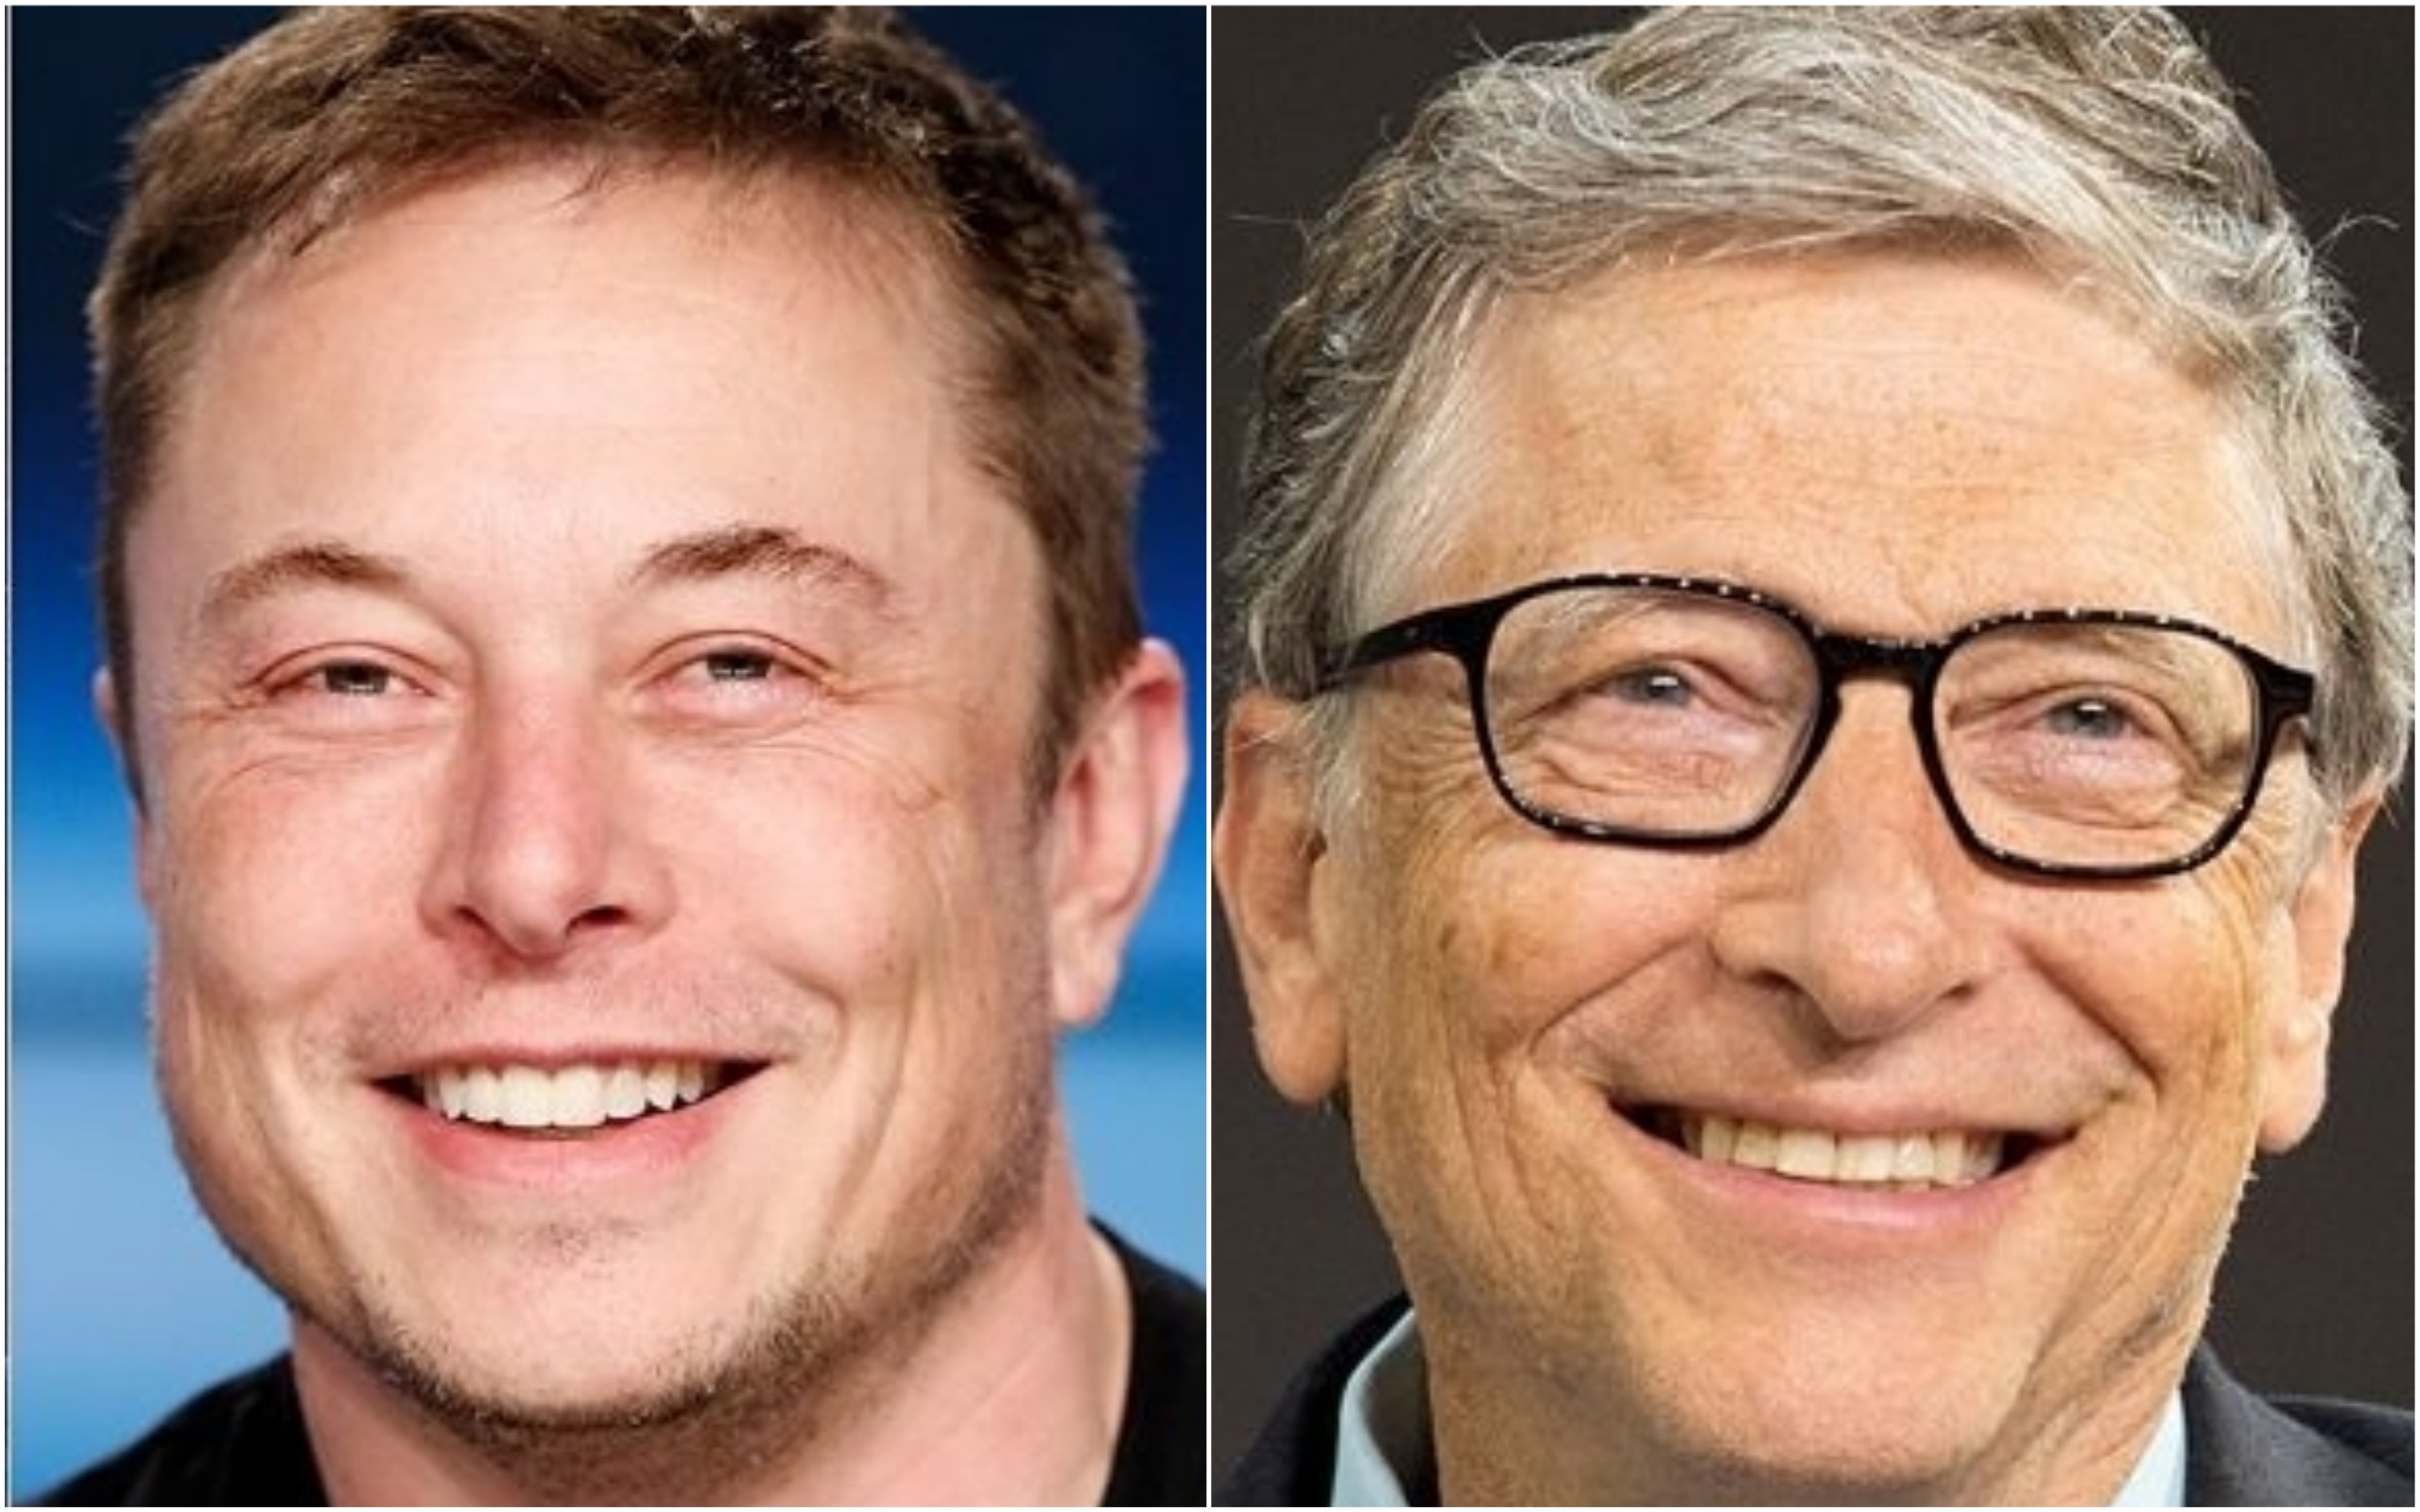 Elon Musk, Bill Gates, others took a personality test and